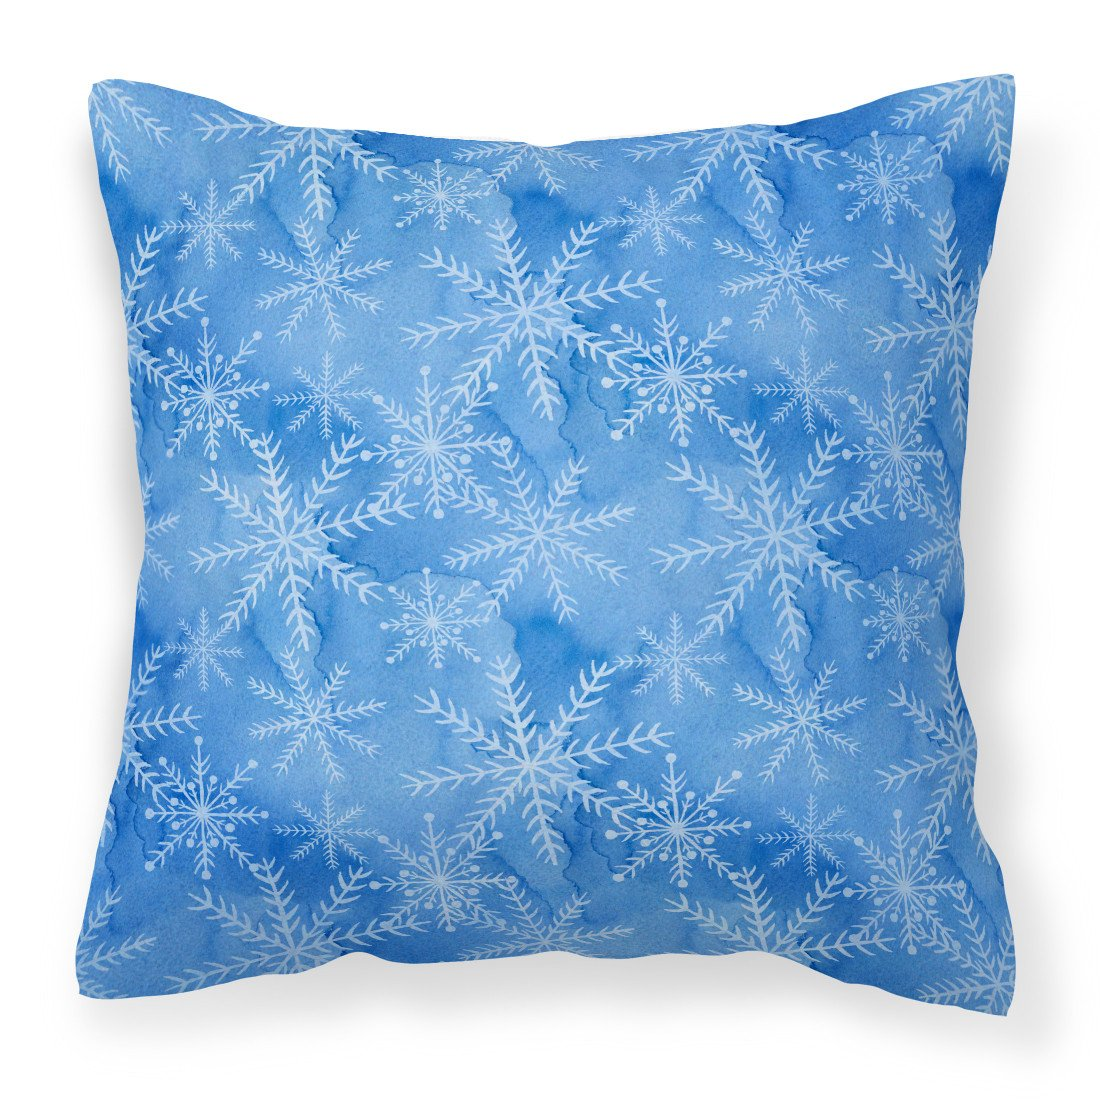 Watercolor Dark Blue Winter Snowflakes Fabric Decorative Pillow BB7576PW1818 by Caroline's Treasures